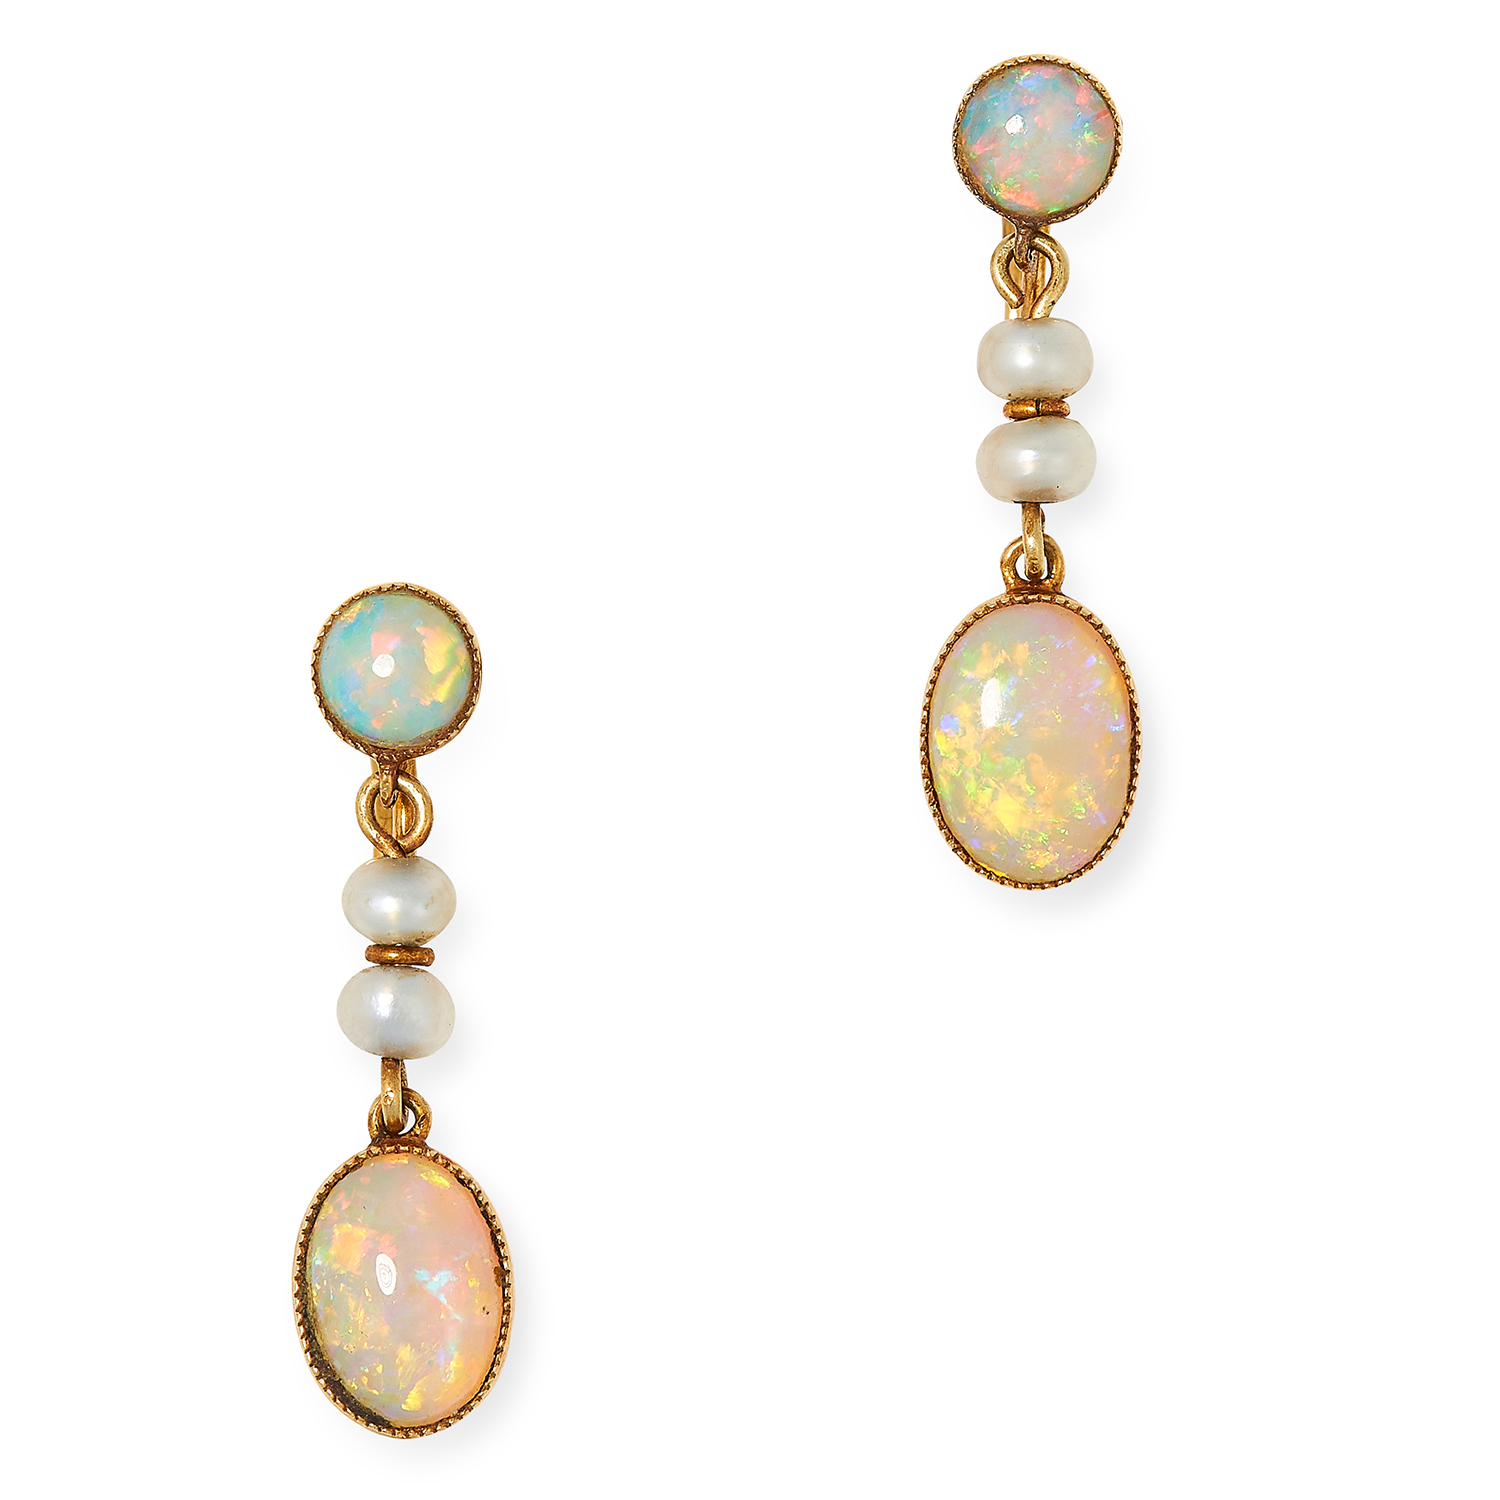 ANTIQUE OPAL AND PEARL EARRINGS set with cabochon opals and pearls, 2.4cm, 2.2g.